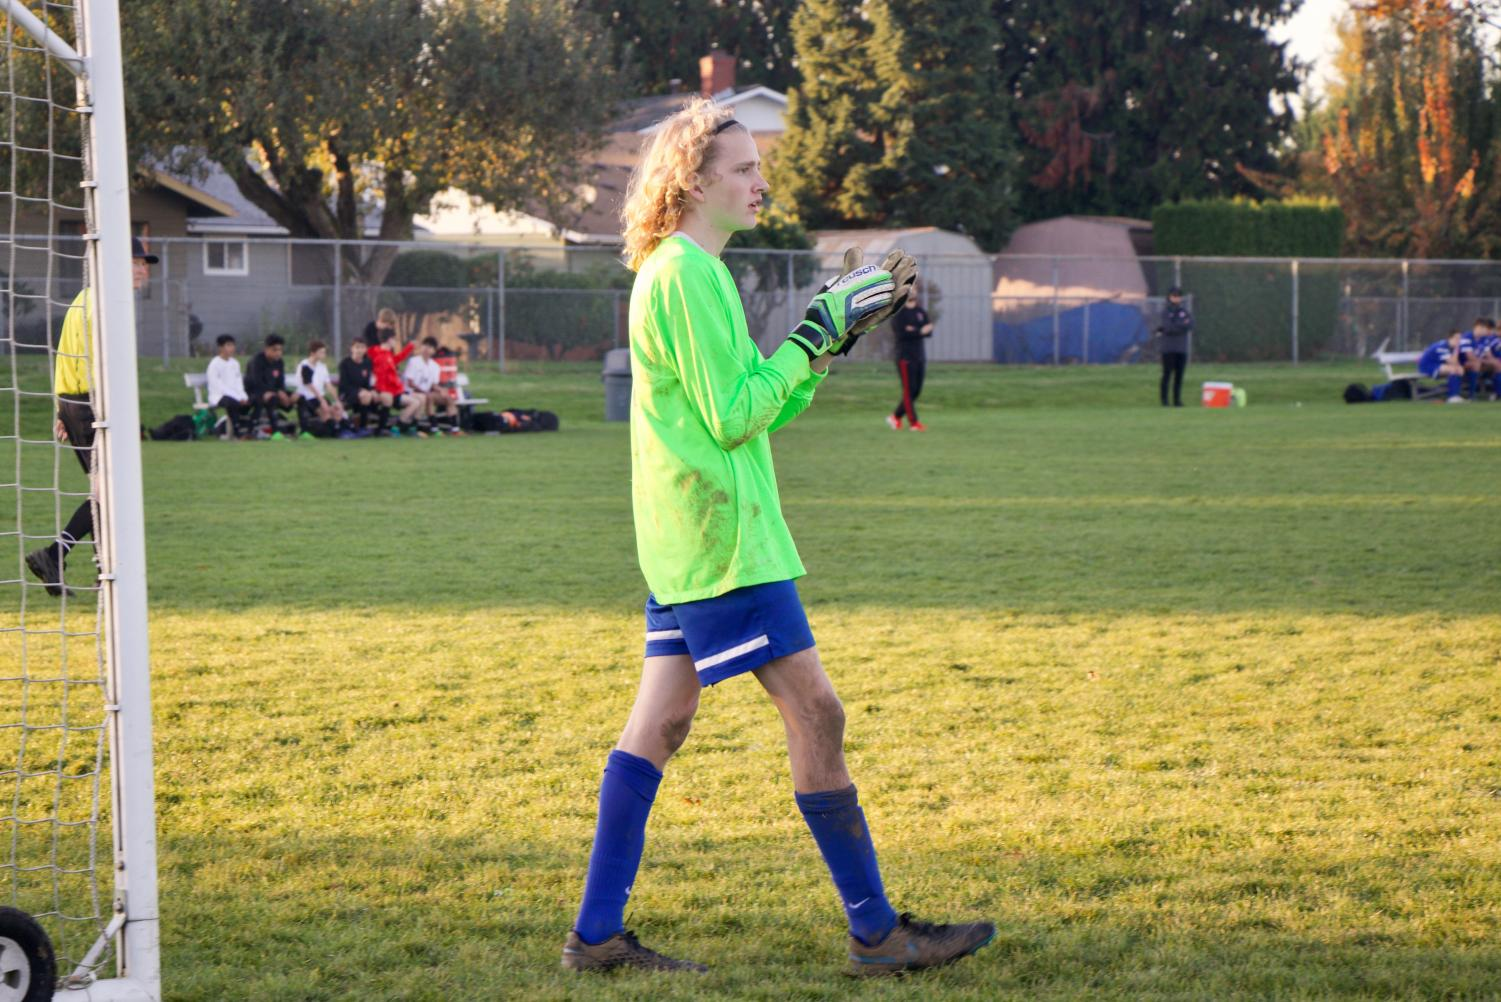 On Wednesday, October 23, the JV2 soccer team hosted their first ever official junior night to celebrate Ian Simmons.